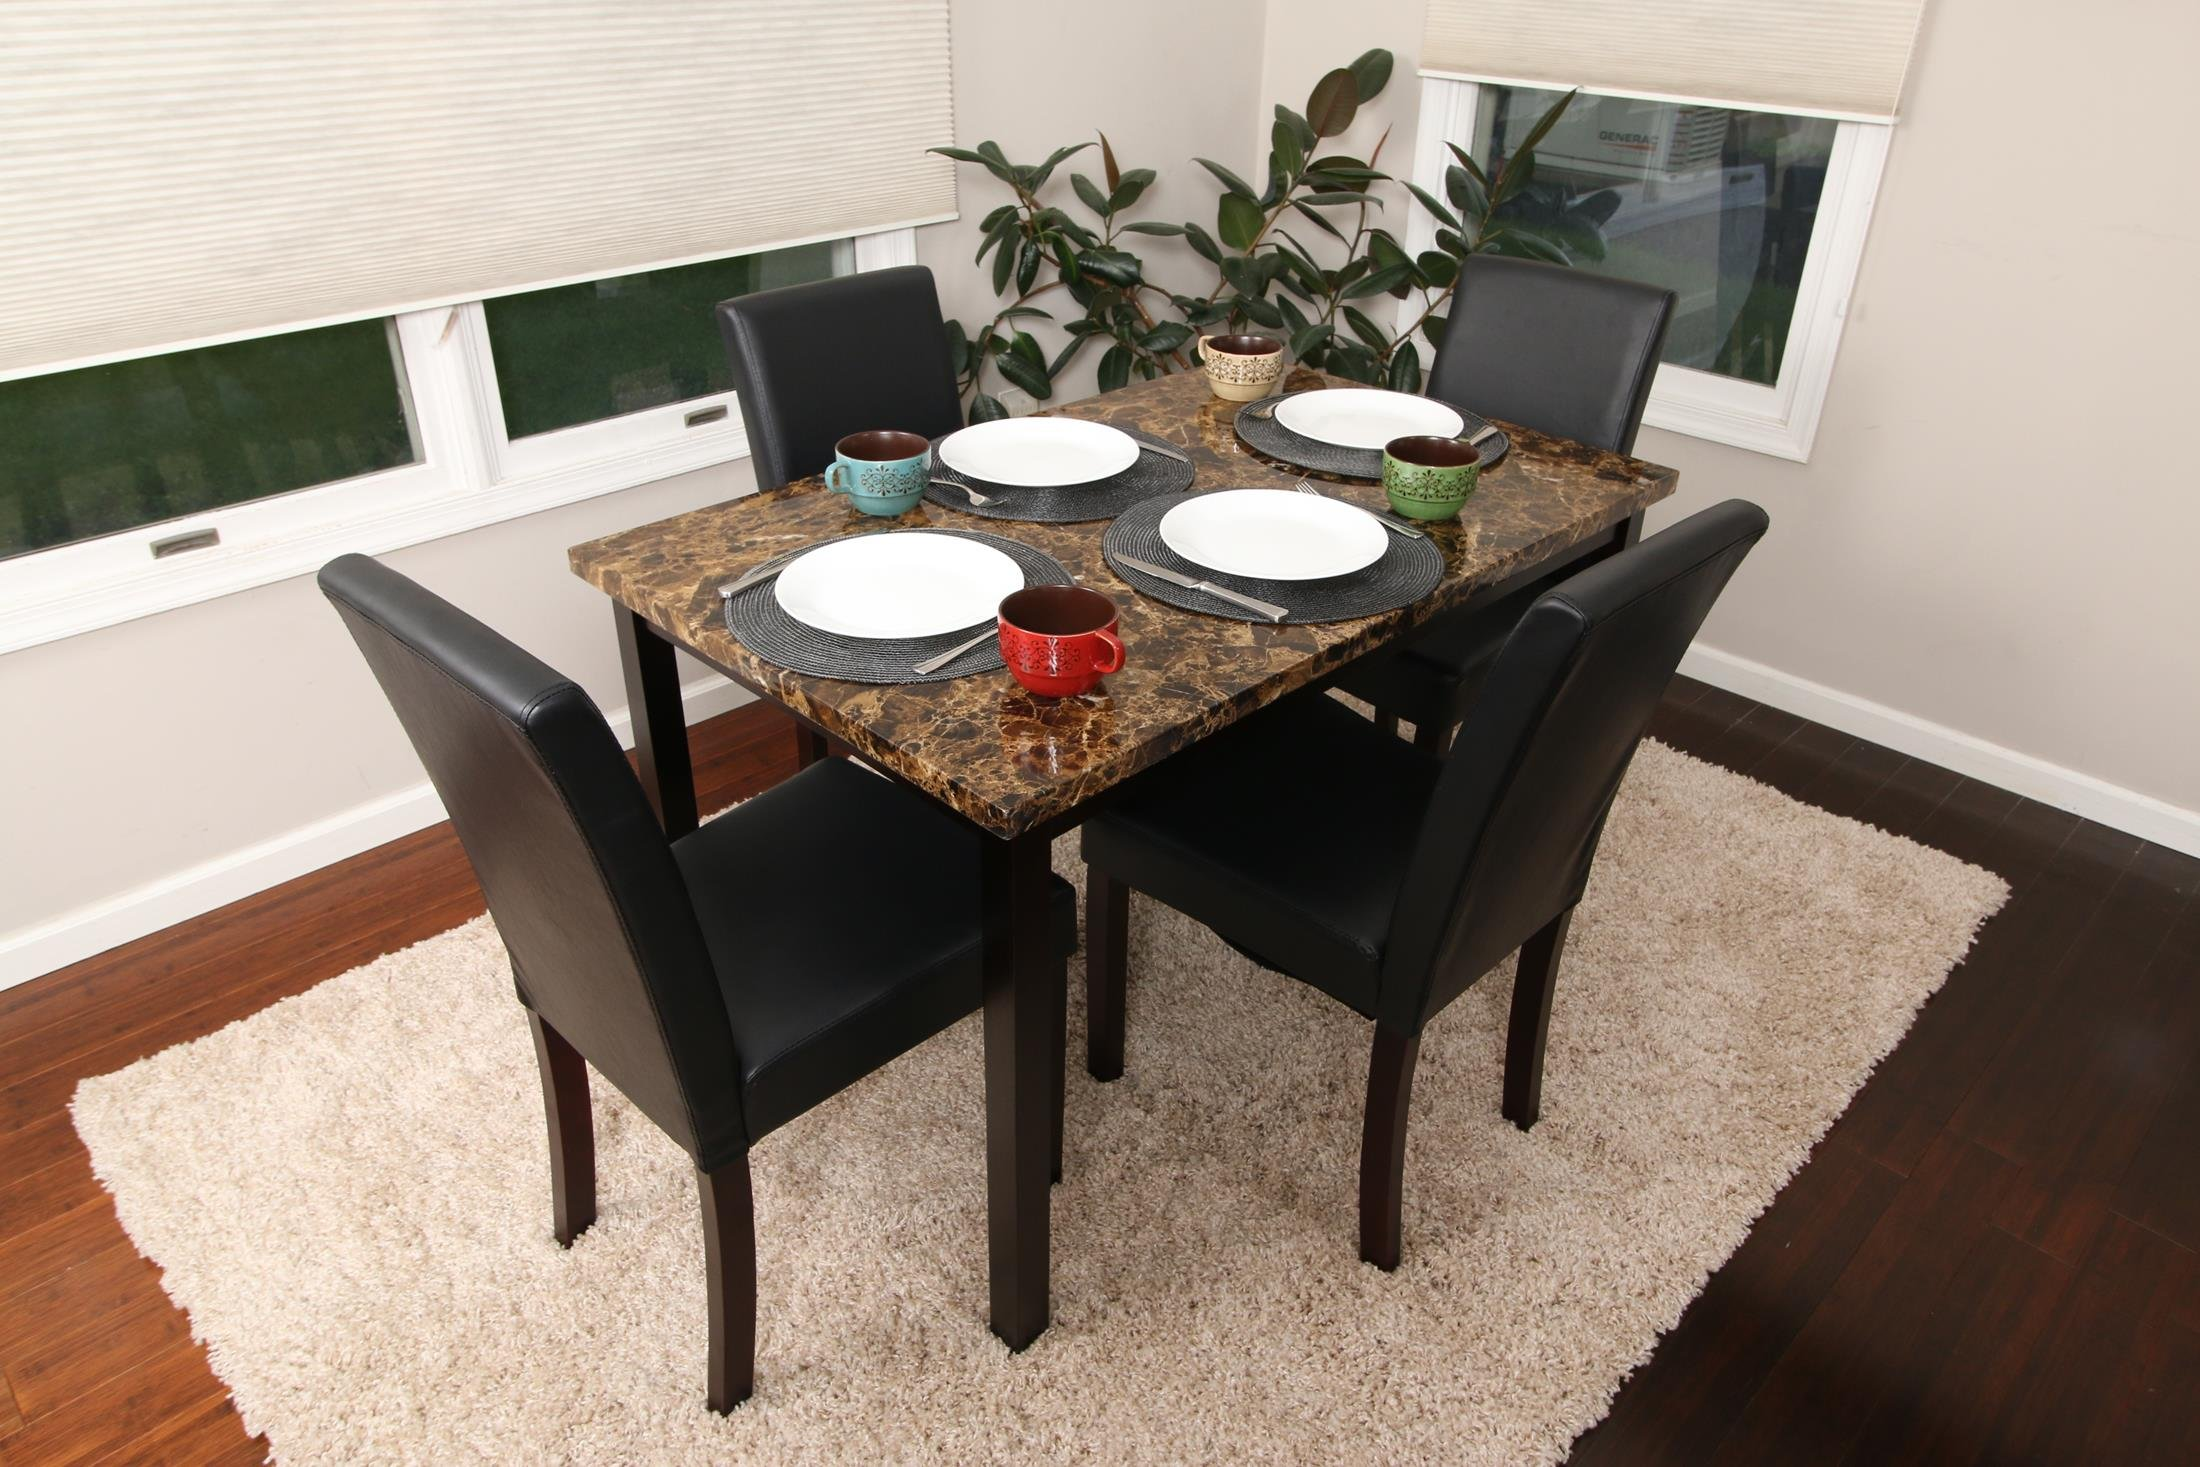 5 PC Thick Marble Black Leather 4 Person Table and Chairs Brown Dining Dinette - Black Parson Chair 150250 Black